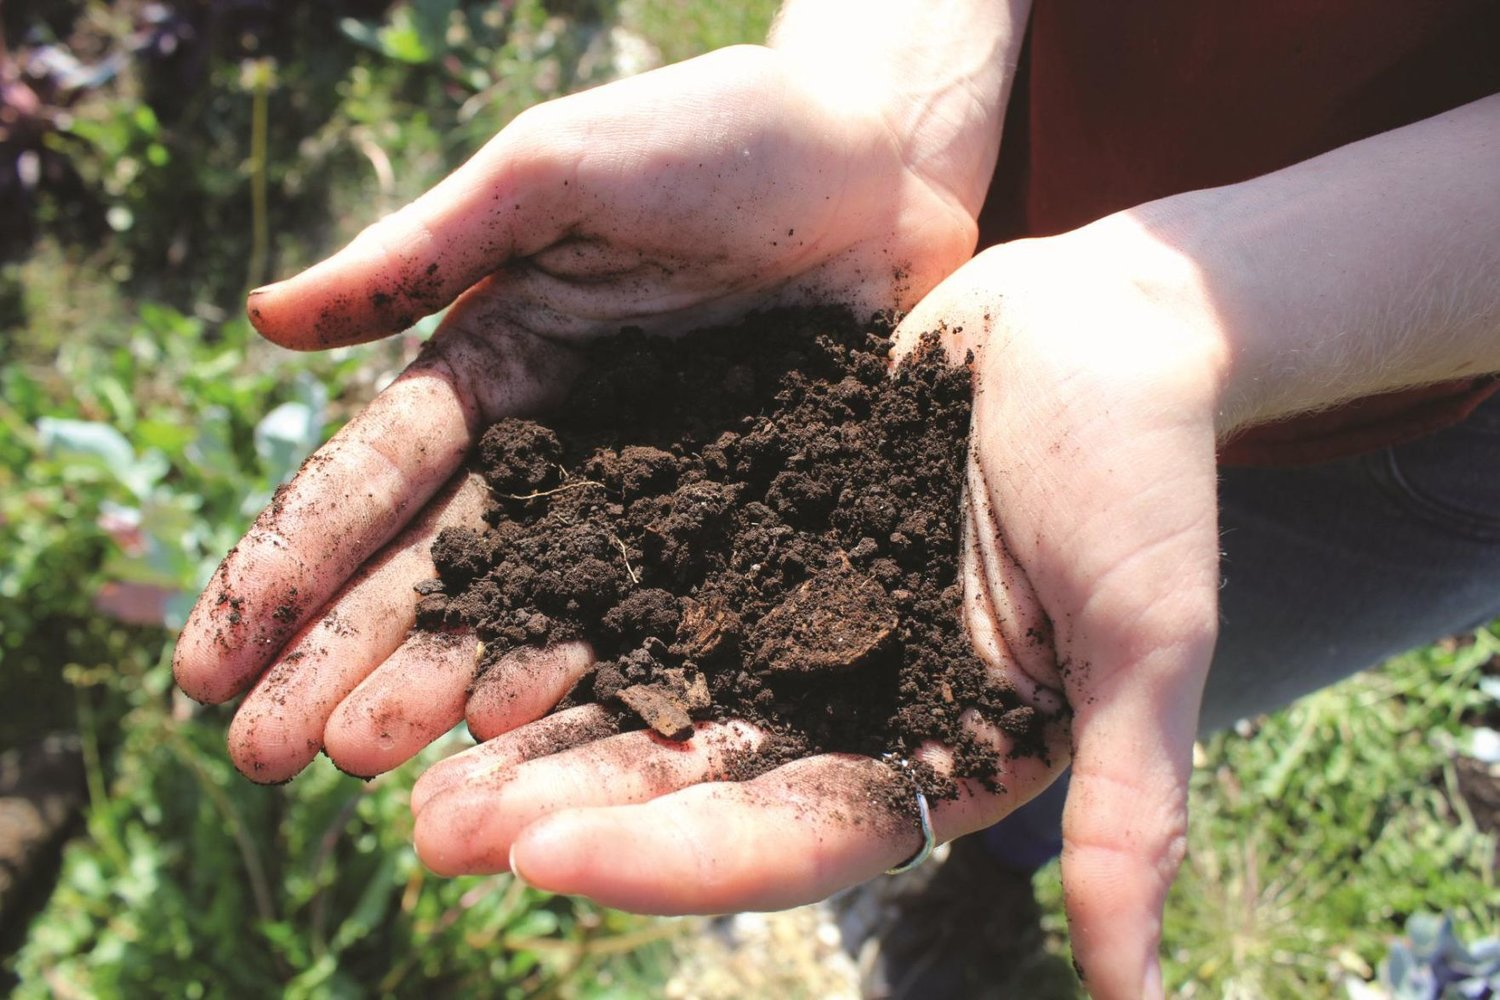 The soil in Chimacum is rich with beneficial bacteria, fungi, worms, beetles, and hundreds of other organisms.